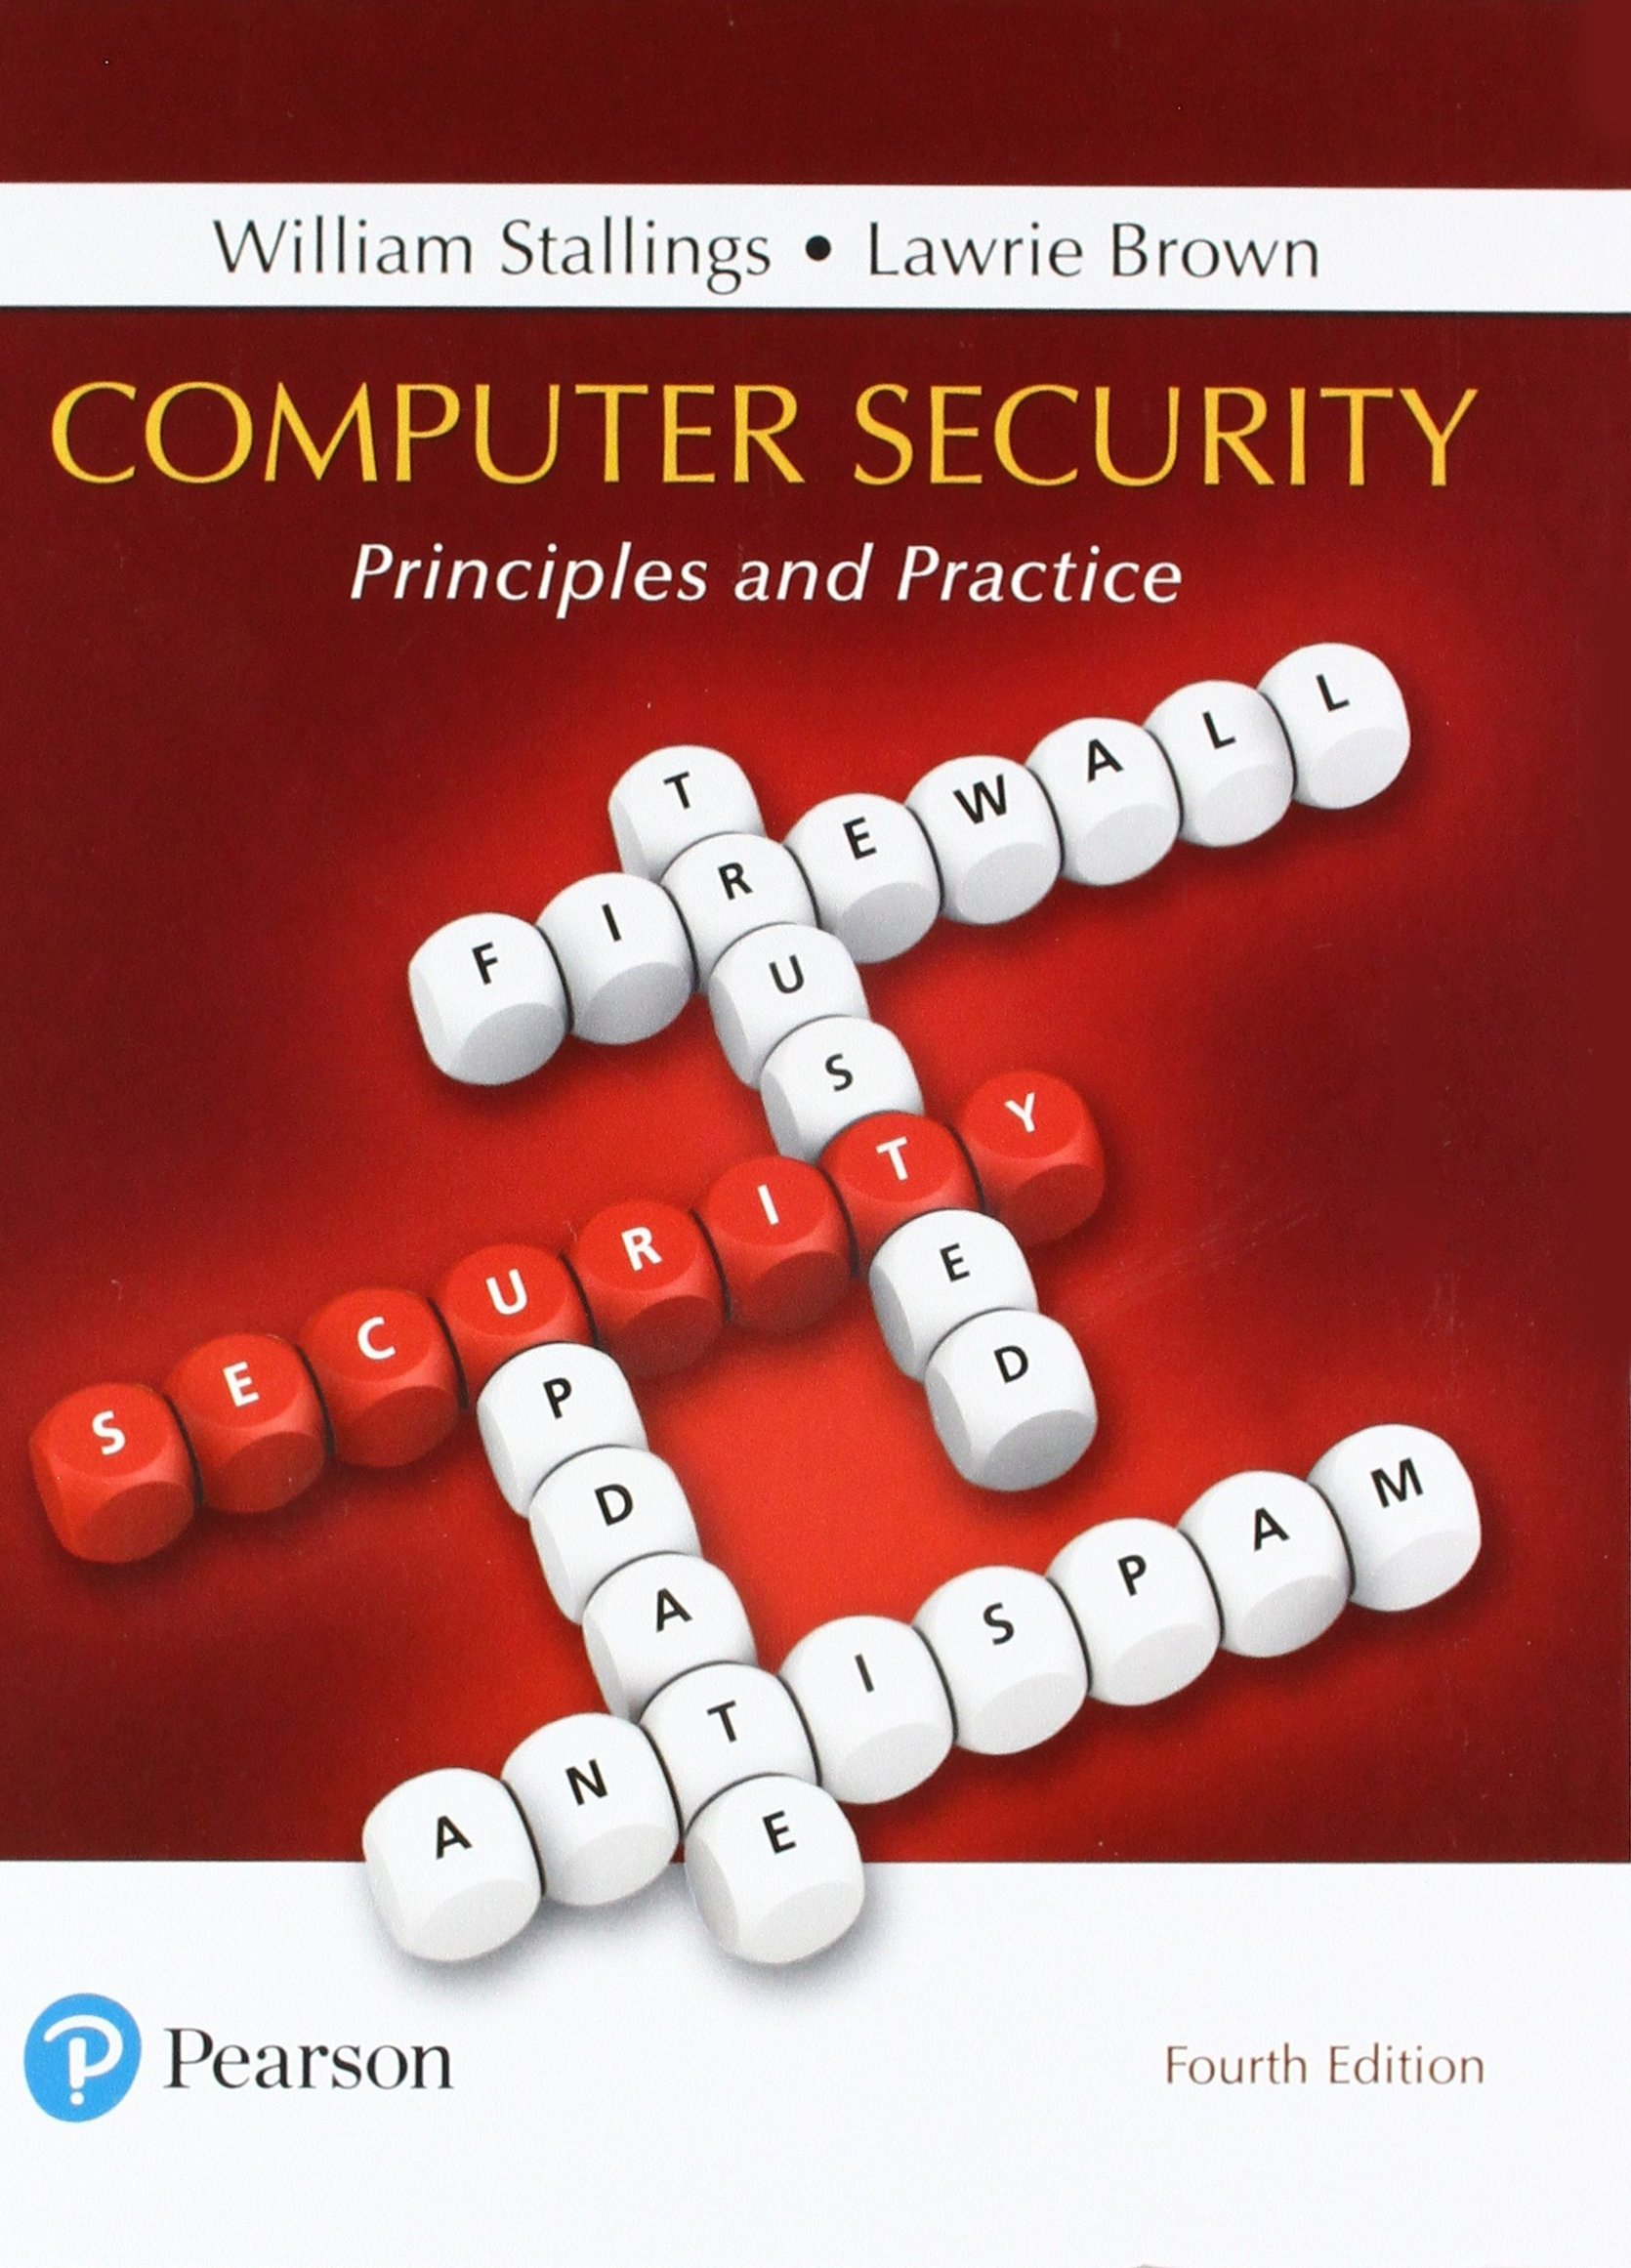 Computer Security: Principles and Practice (4th Edition) by Pearson